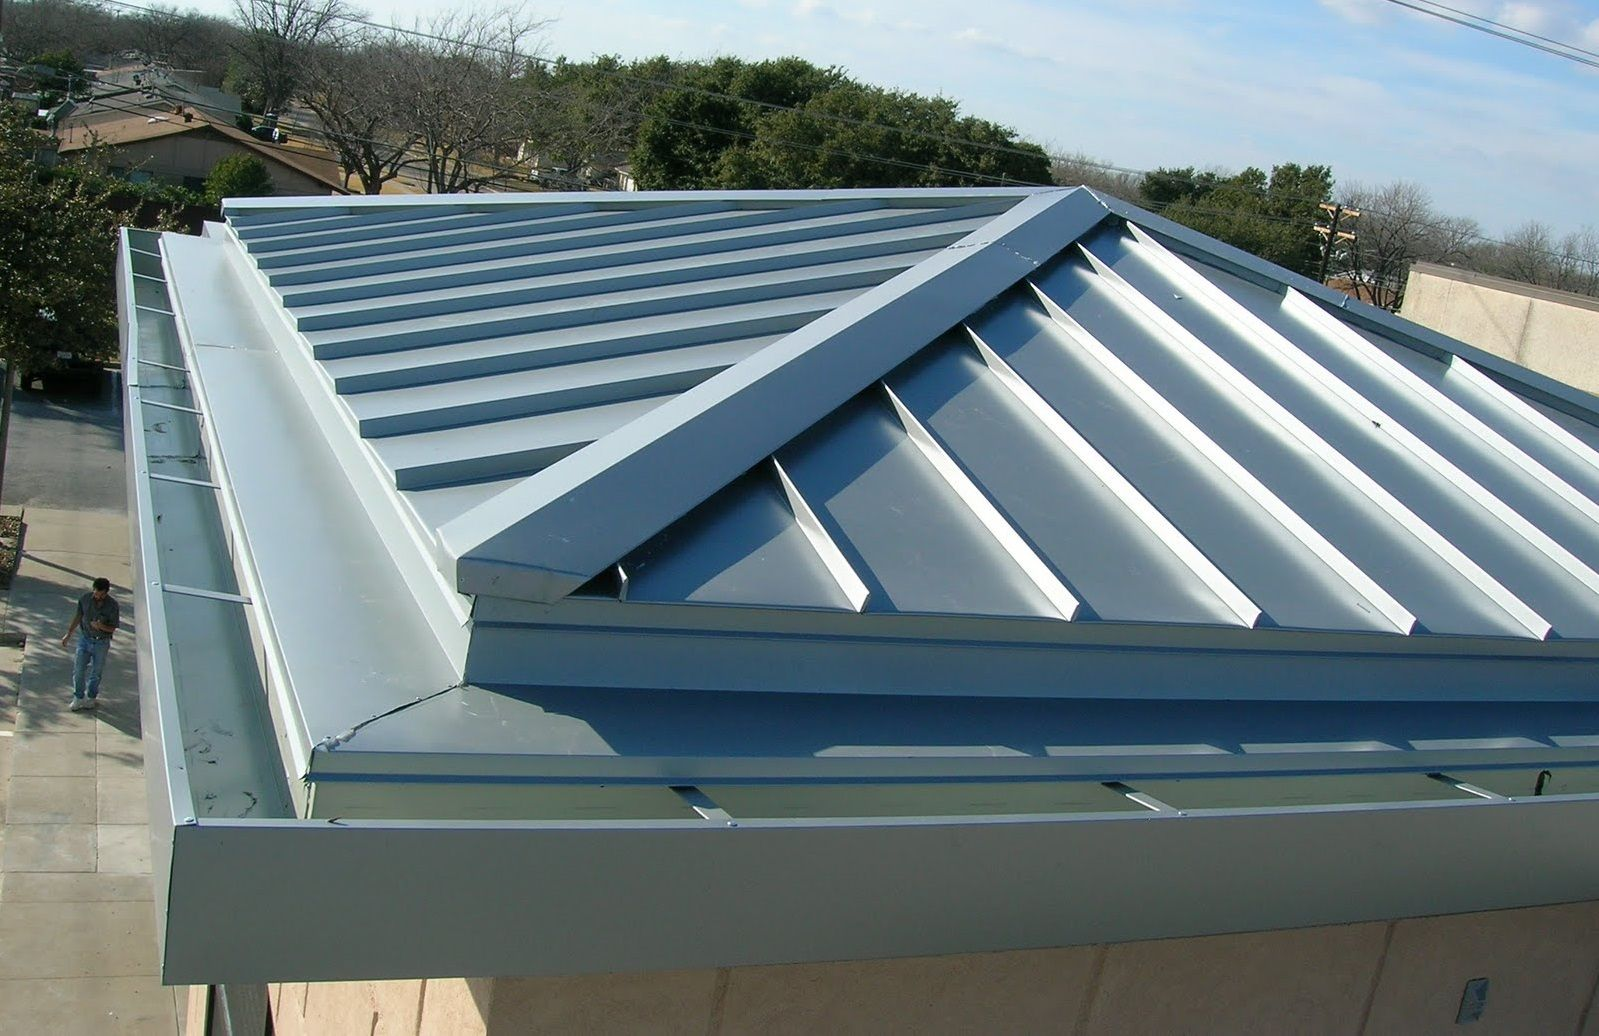 Metal Roofing For Commercial Buildings In Rochester Ny Http Citywideroofingrochester Com Metal Roof Installation Roof Architecture Metal Roof